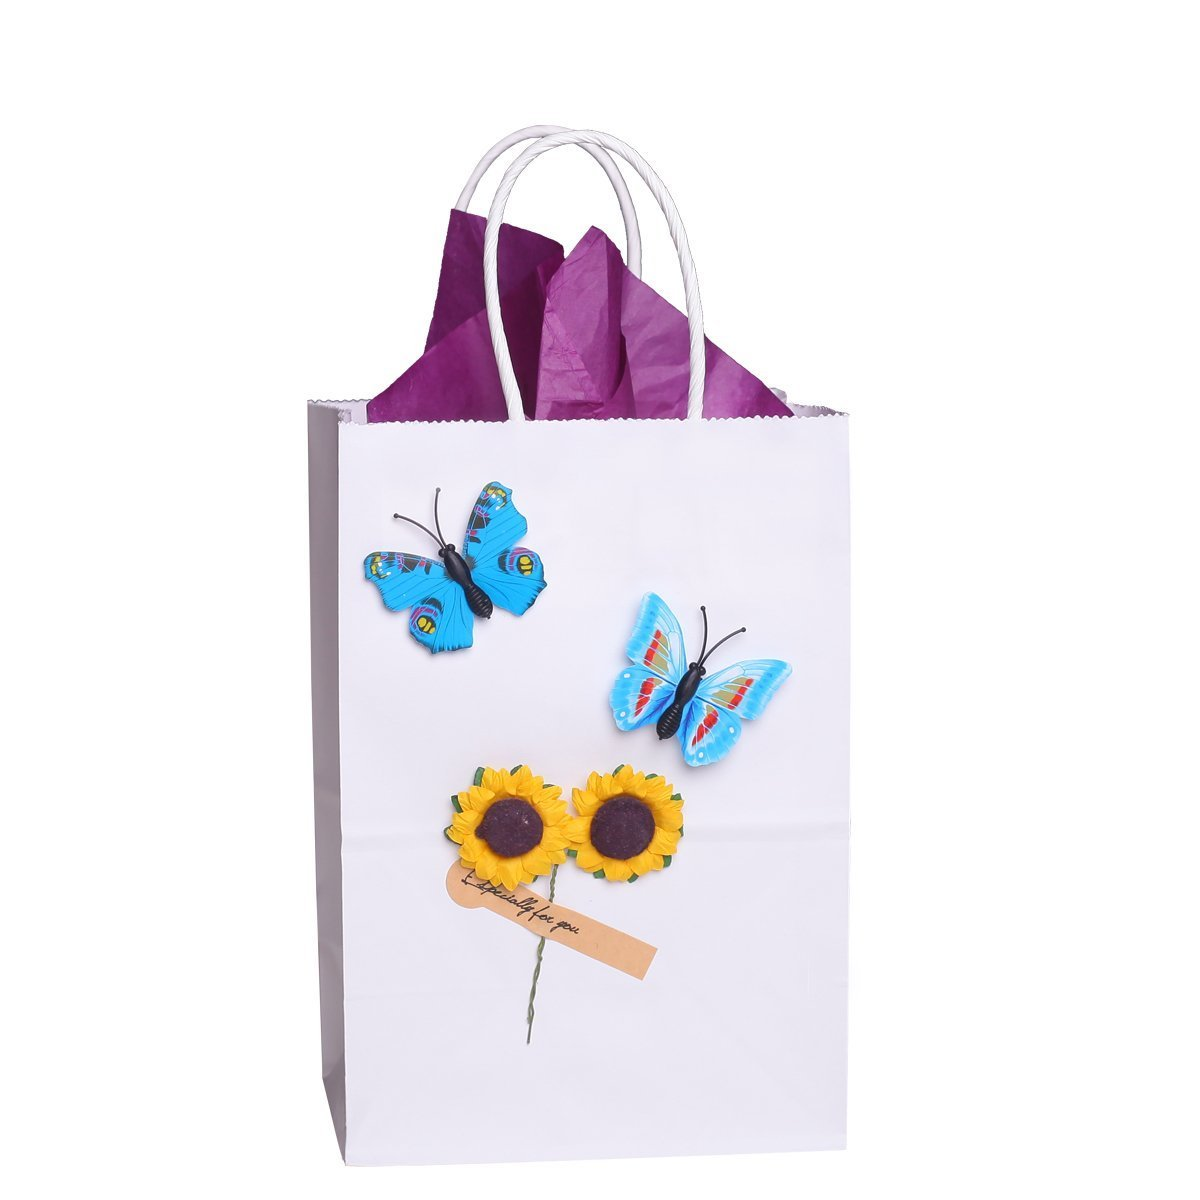 BagDream Small Kraft Paper Bags 50Pcs 5.25''x3.75''x8'', Party Bags, Shopping Bag, Kraft Bags, White Bags with Handles by BagDream (Image #5)